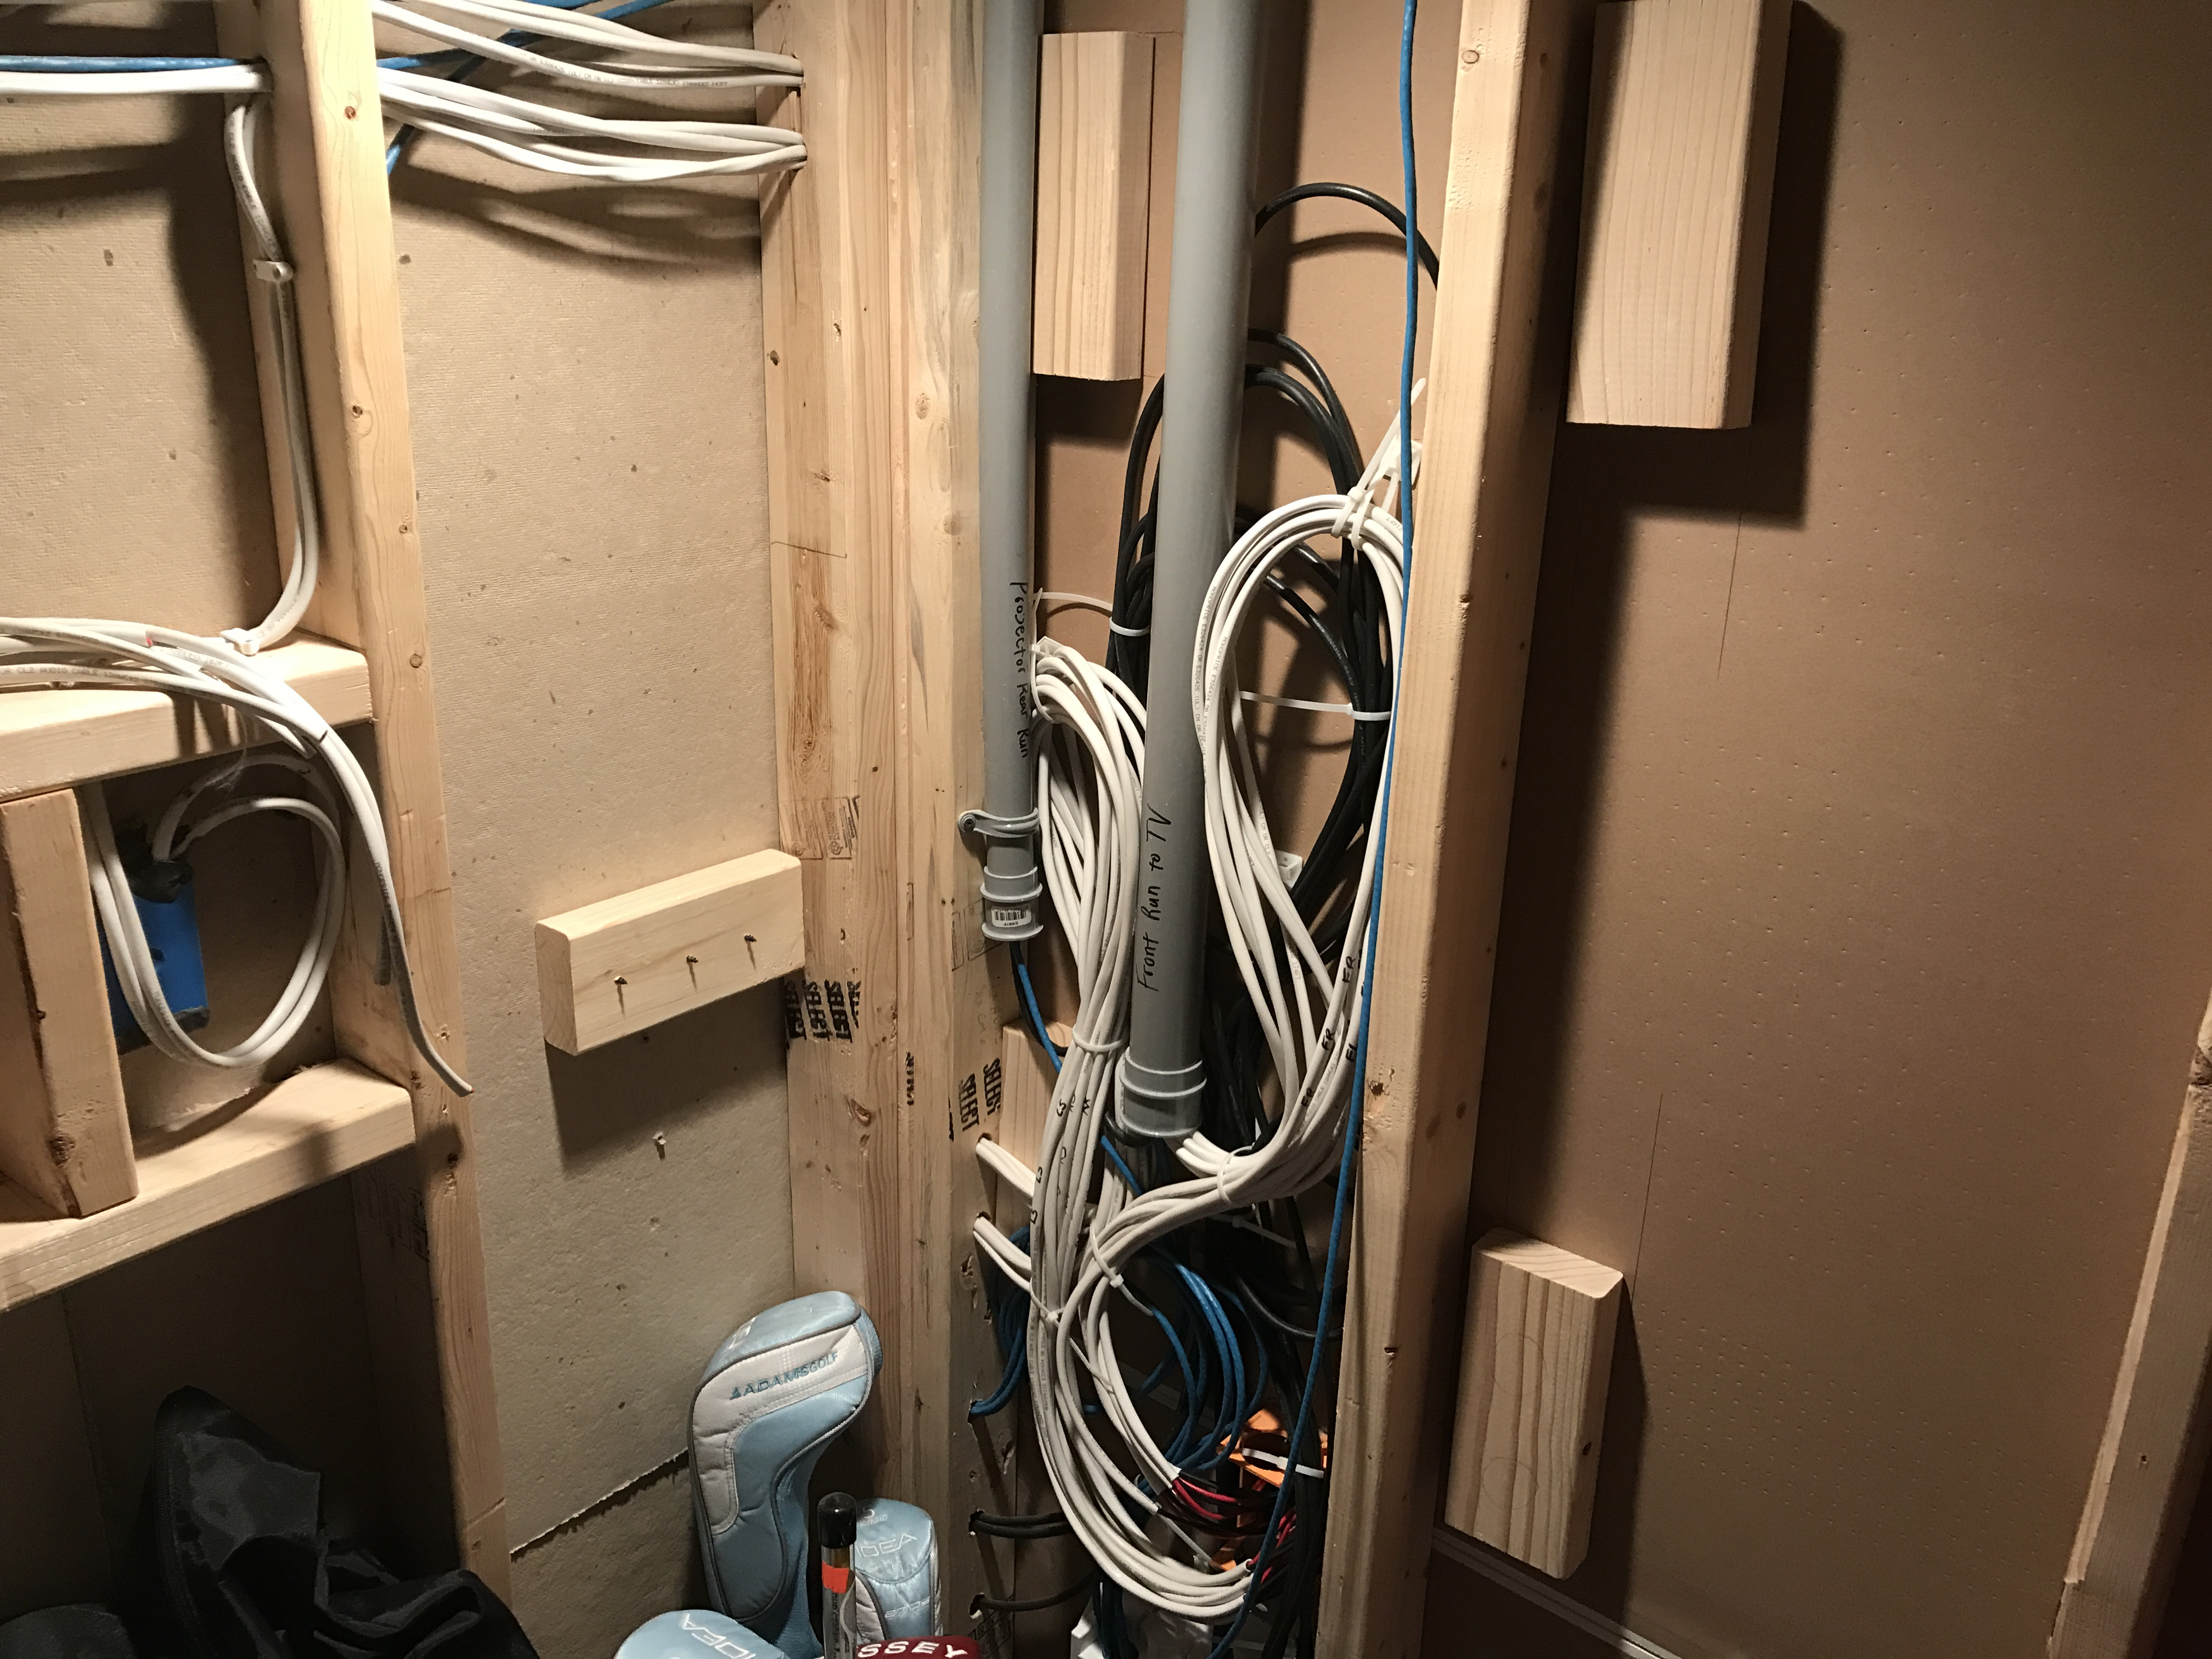 official jtr speakers subwoofer th page avs forum just a few bonus pics of where my receiver movies are as well as how i have all of the wiring situated for the room half the basement is finished the ht